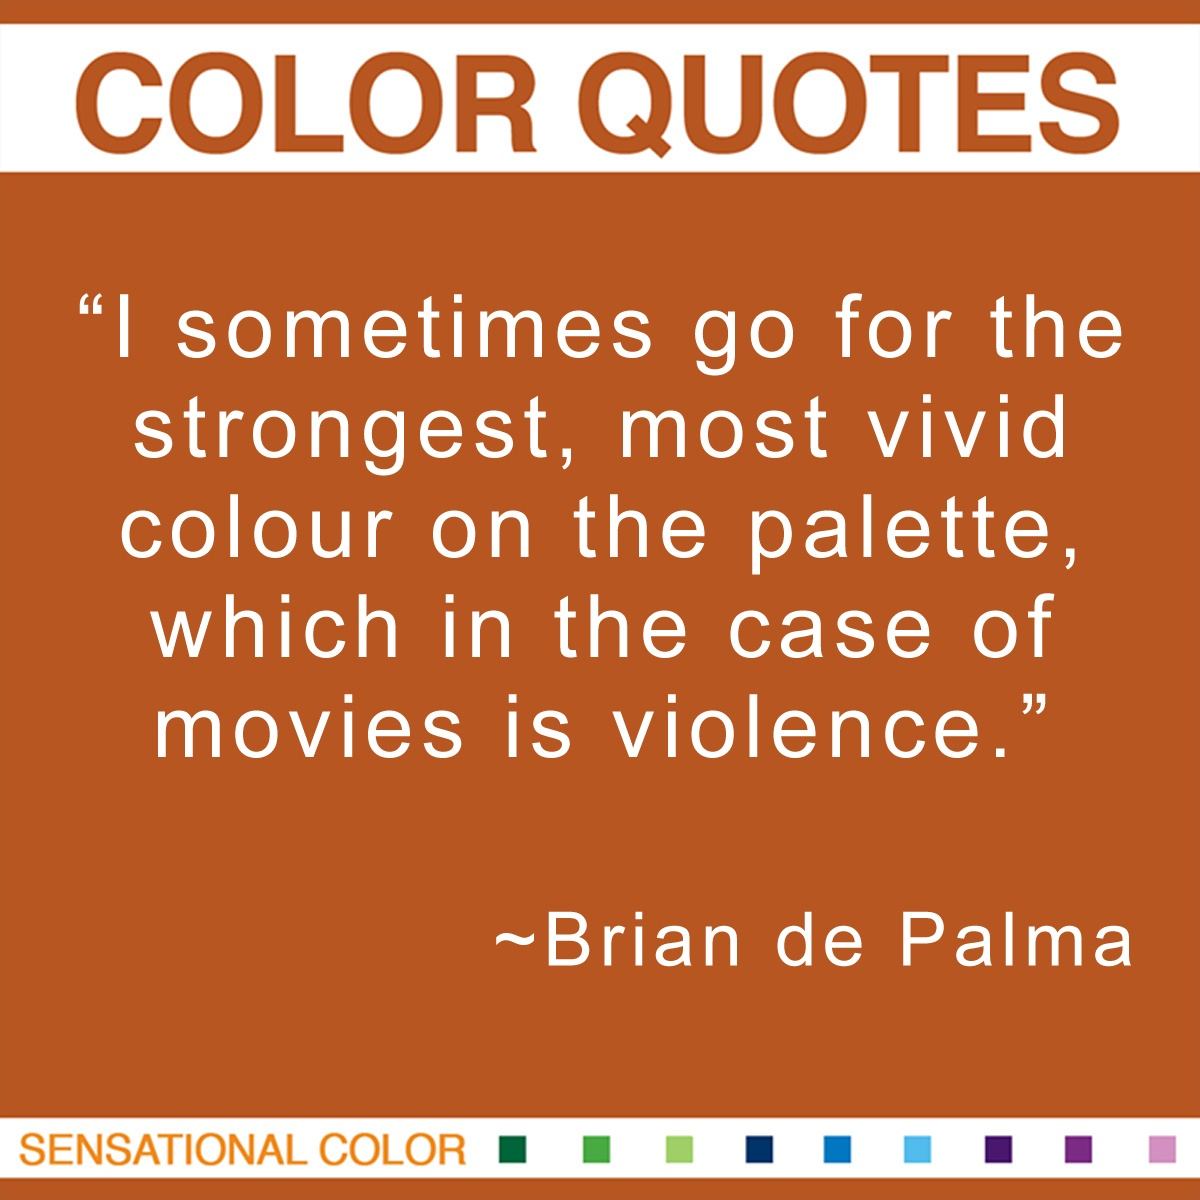 """I sometimes go for the strongest, most vivid colour on the palette, which in the case of movies is violence."" - Brian de Palma"